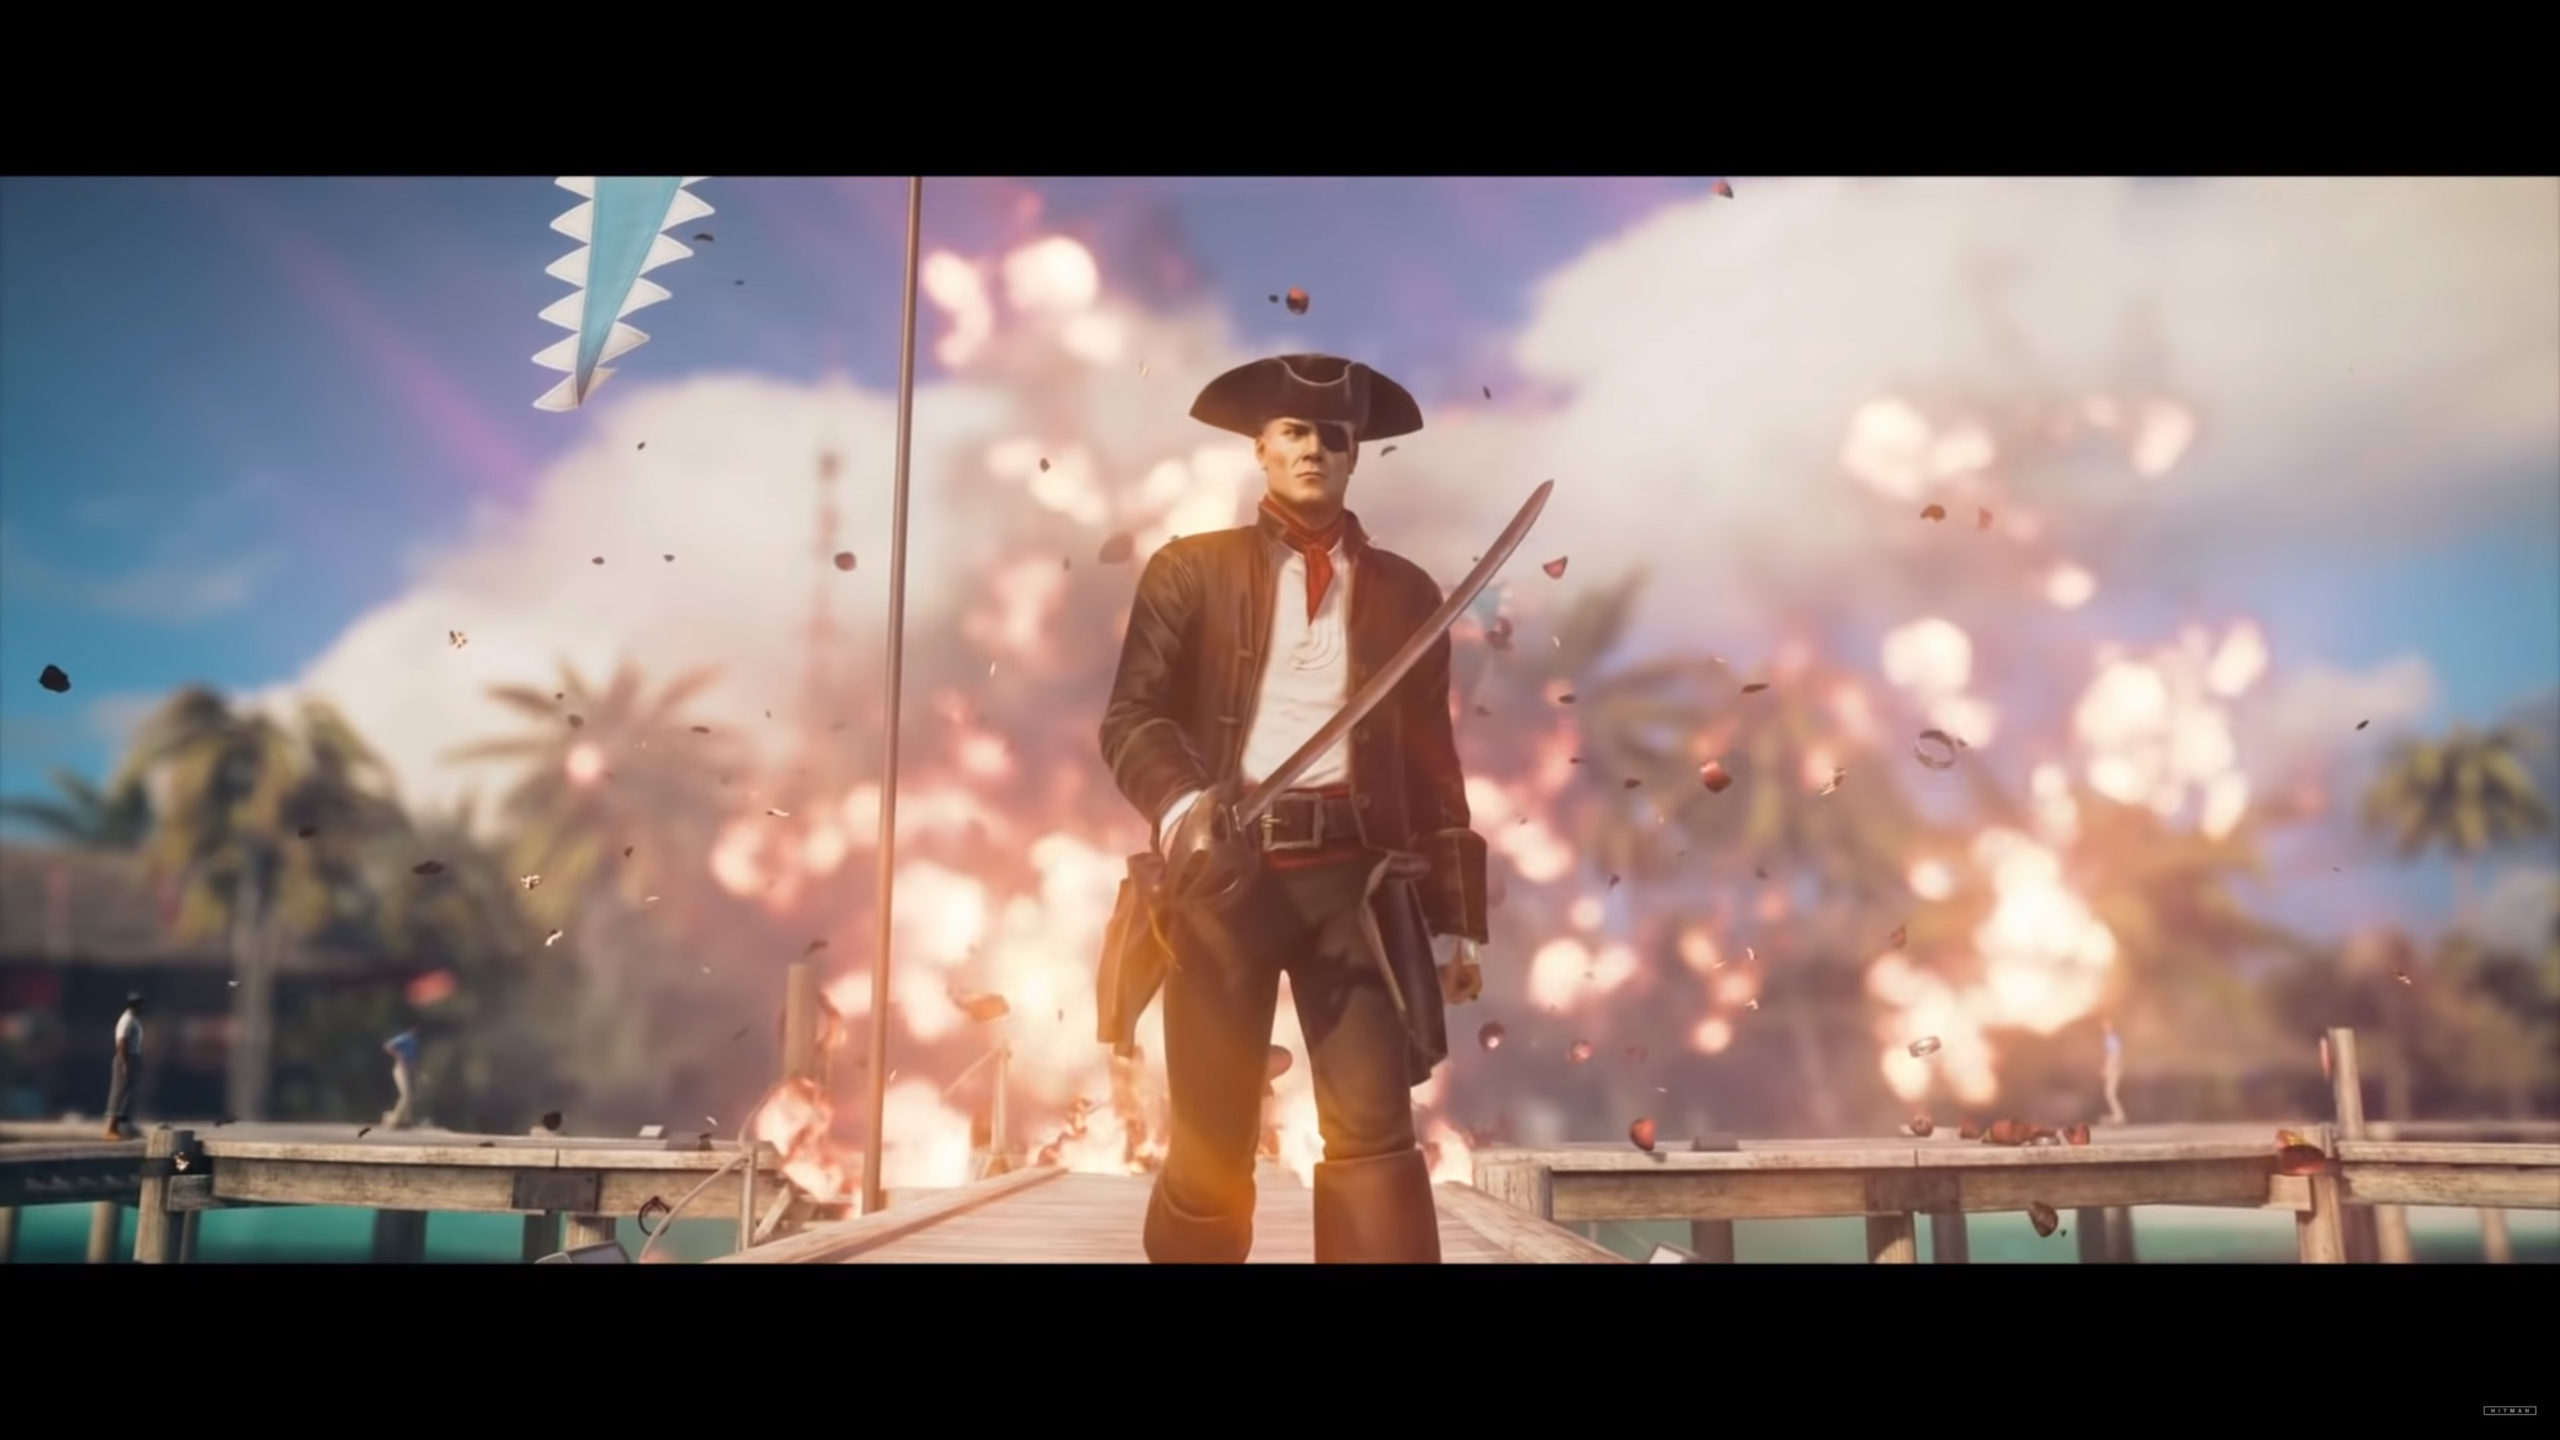 HITMAN 2 - Buccaneer disguise